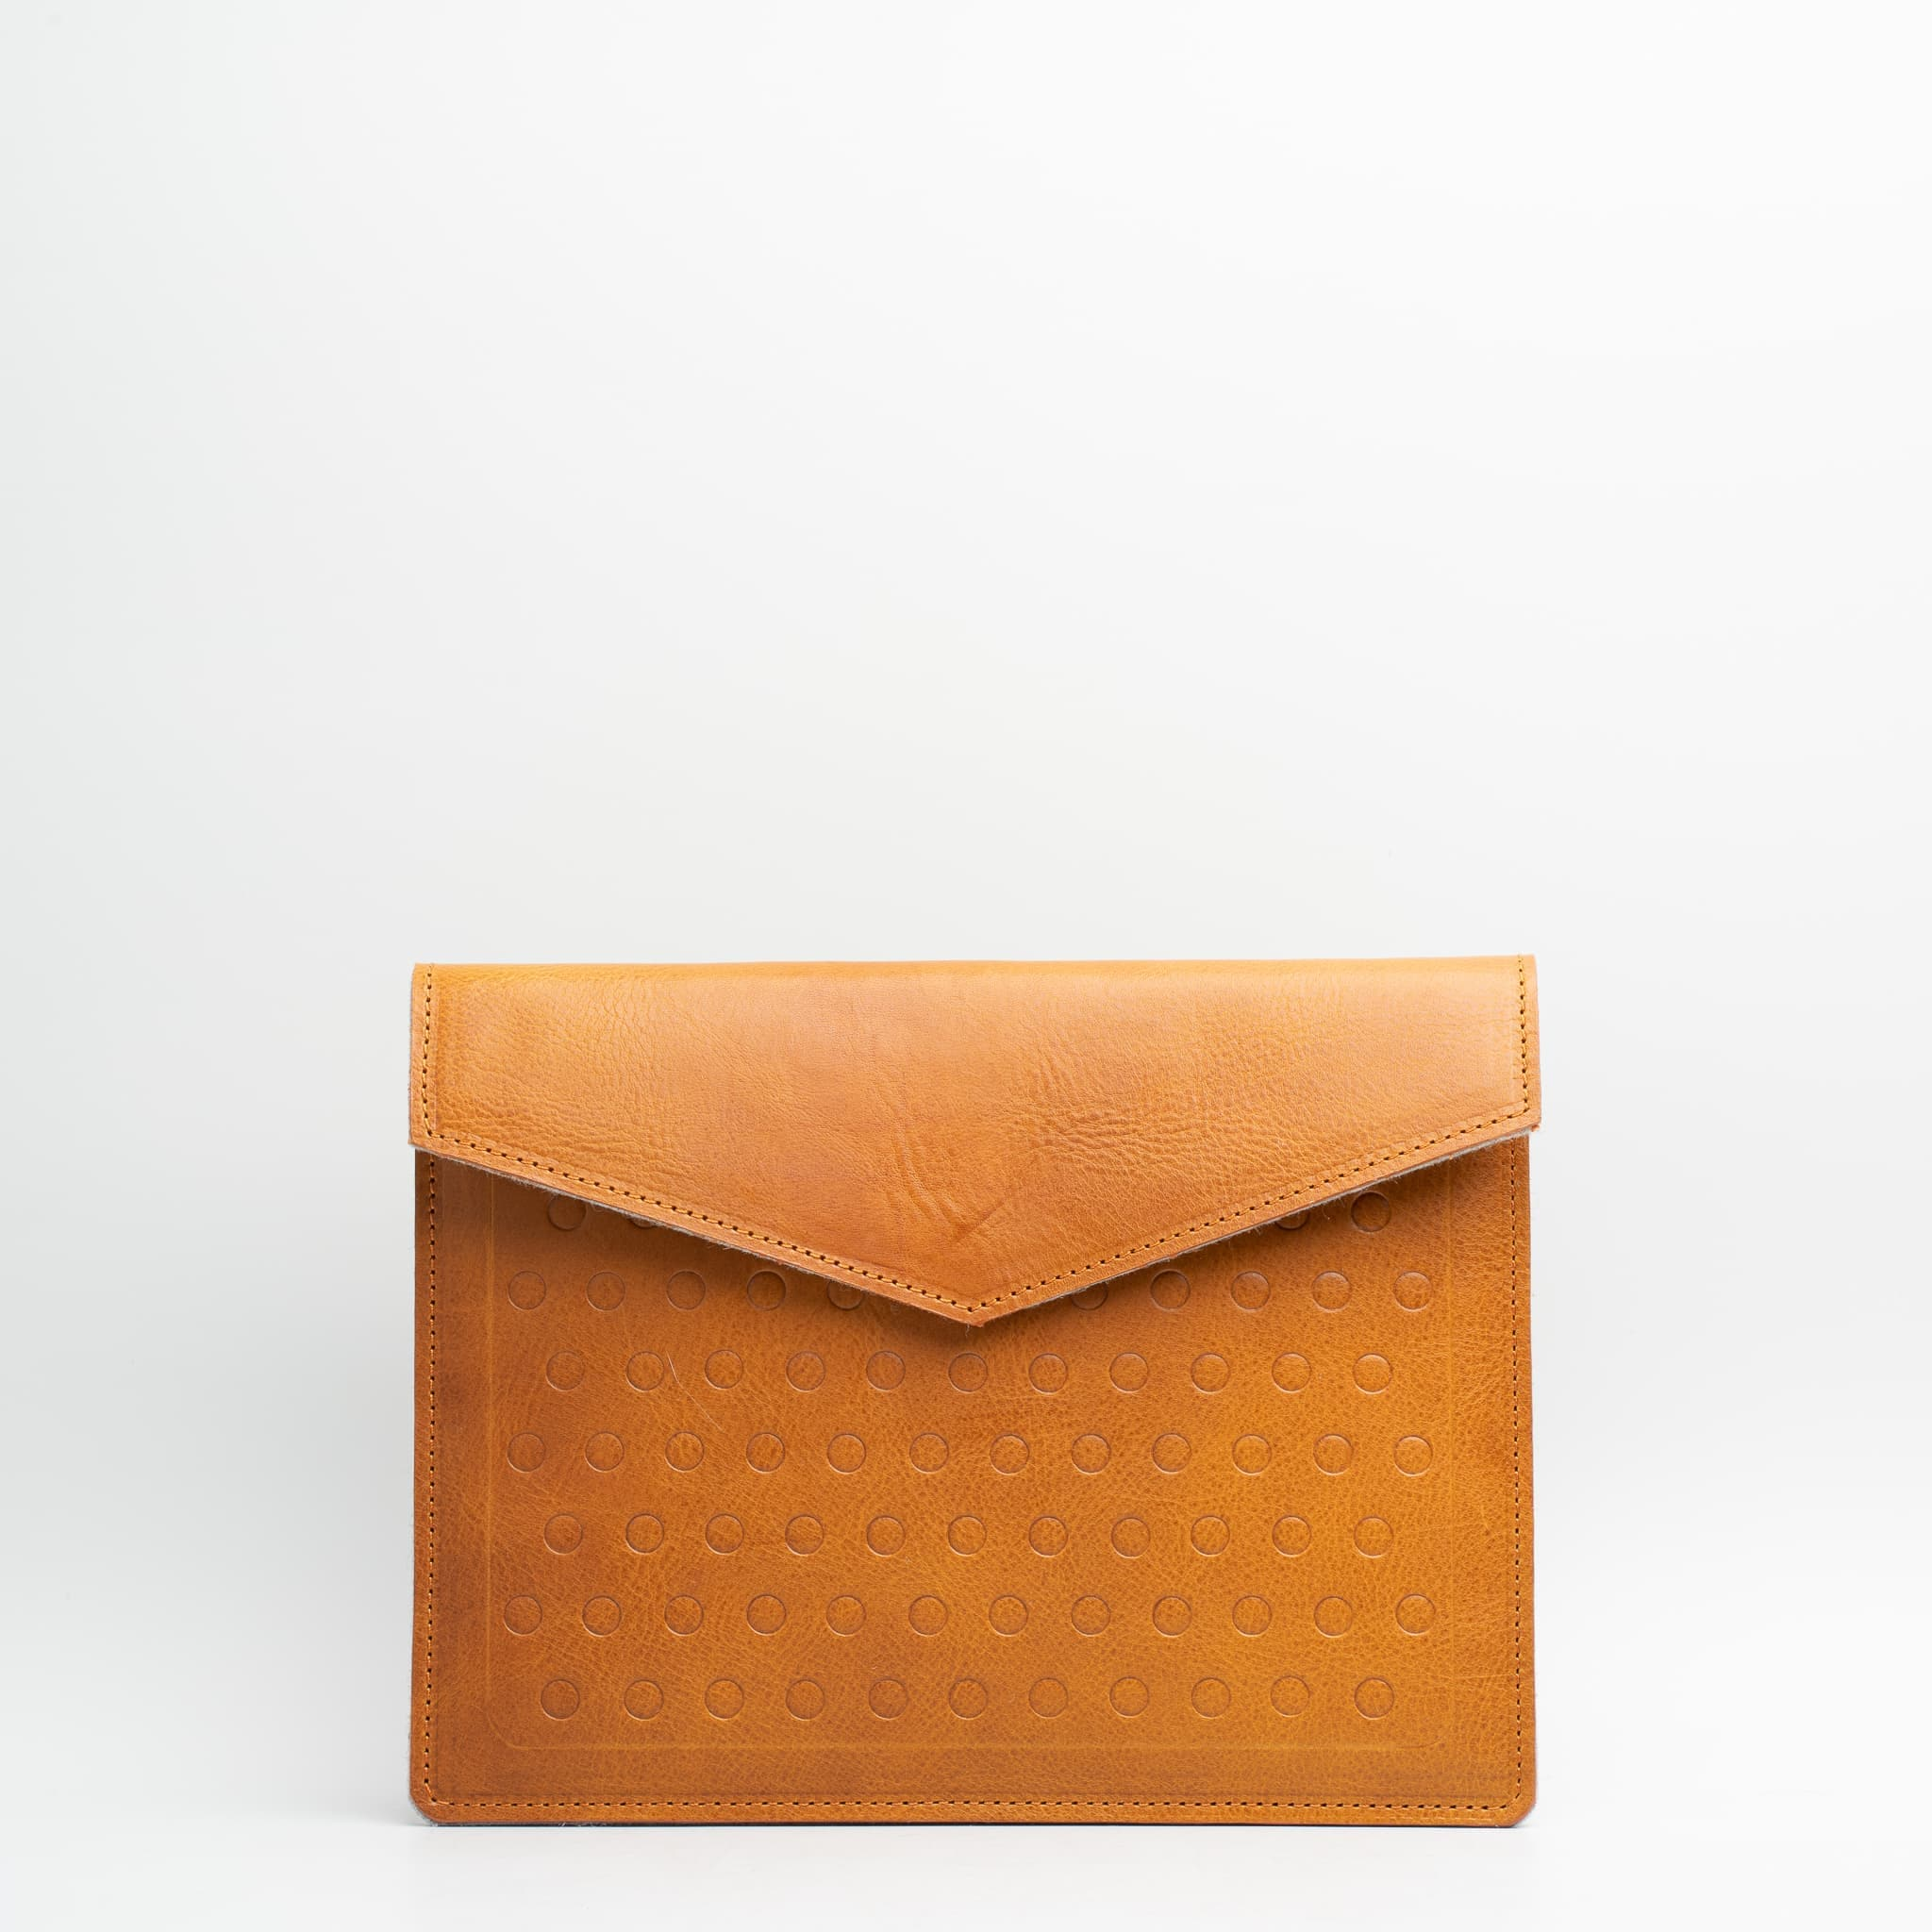 personalised leather macbook sleeve